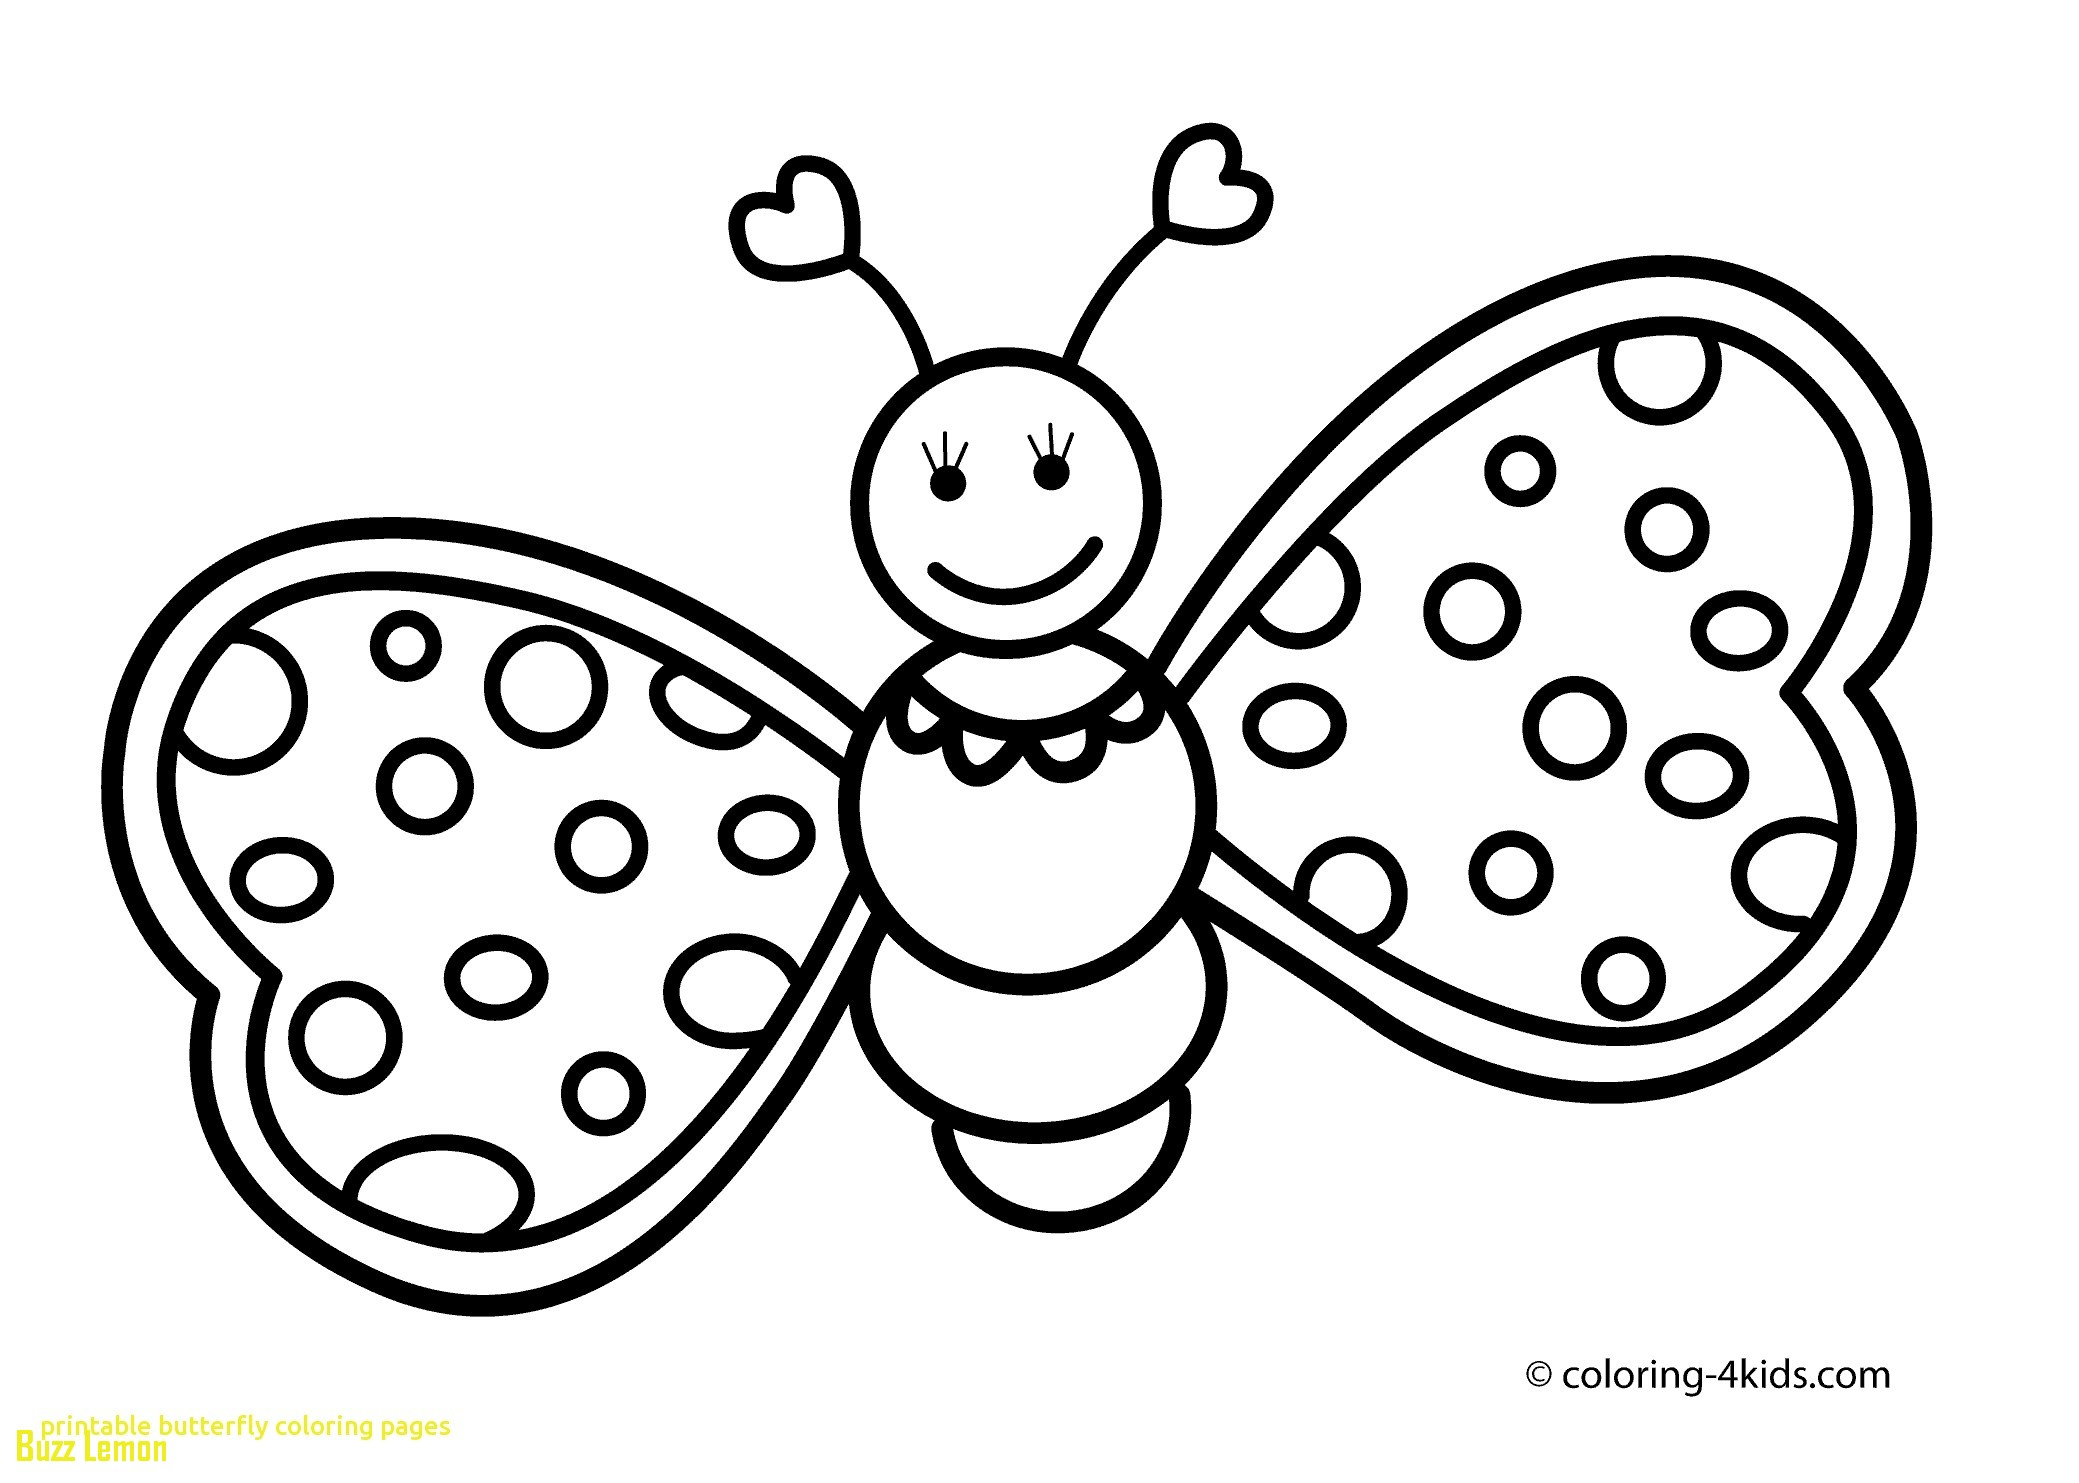 2079x1483 Printable Butterfly Coloring Pages For Kids And Page